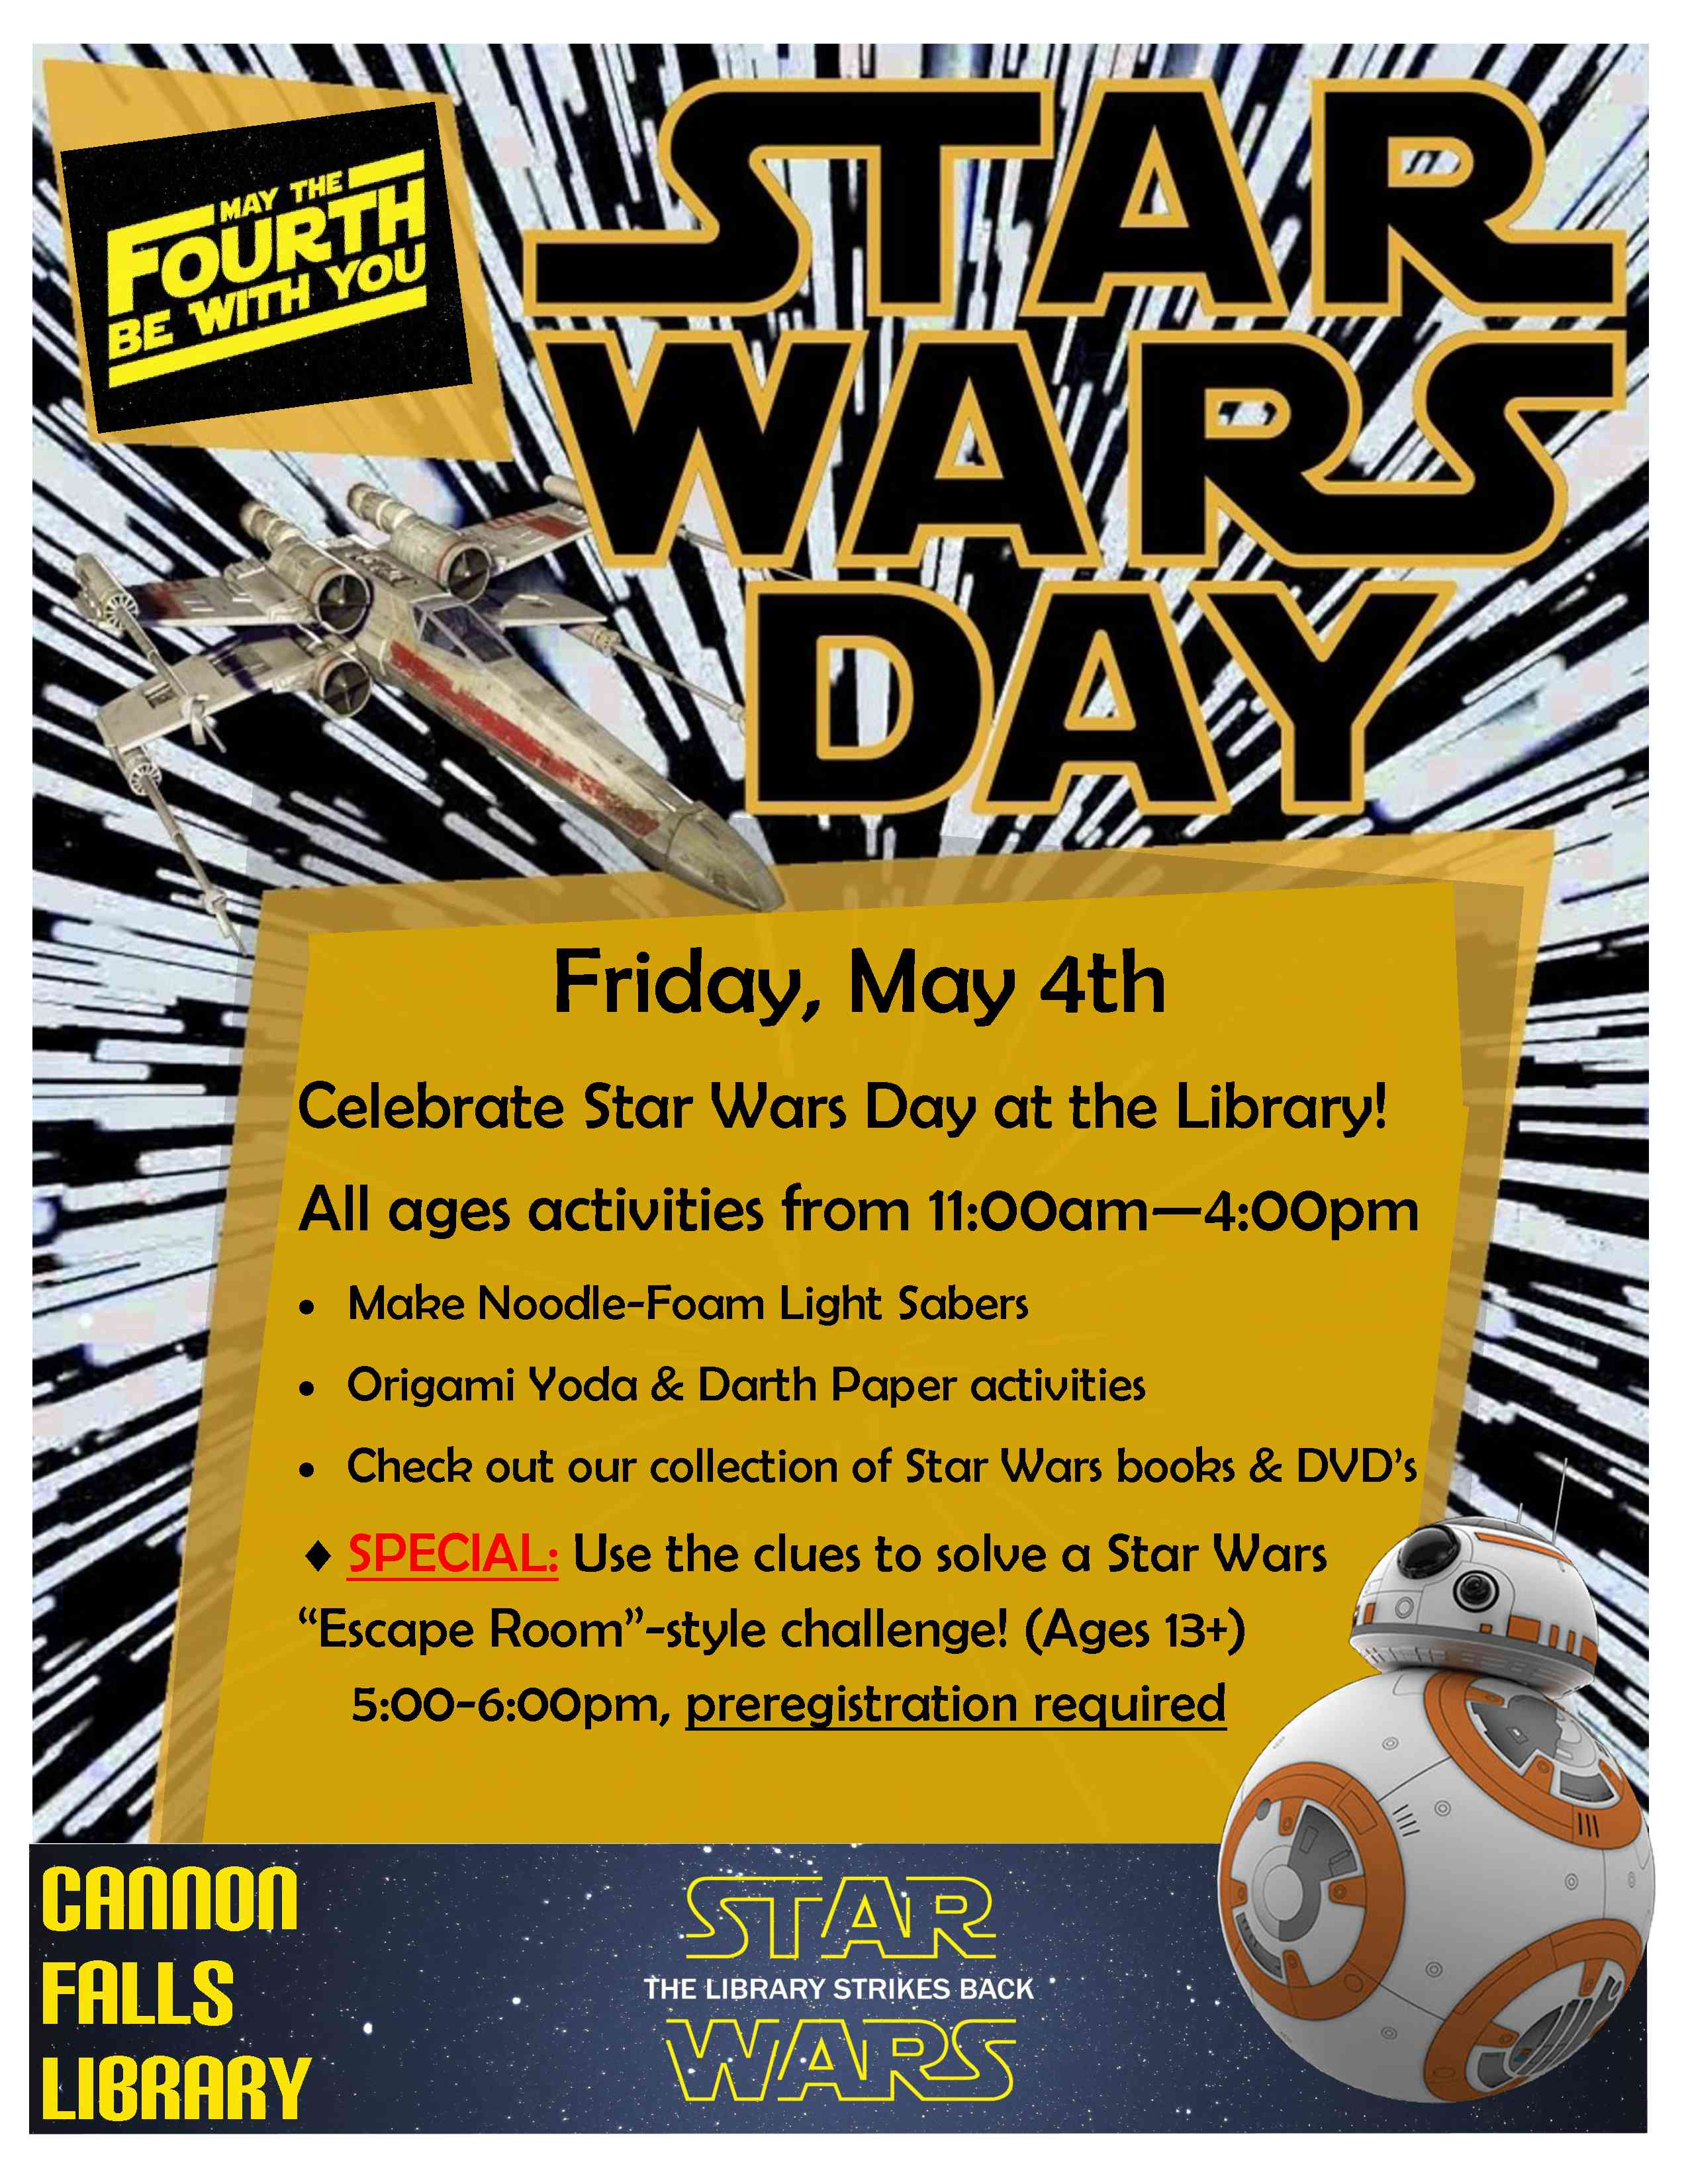 Star Wars Day May 4th Cannon Falls Library